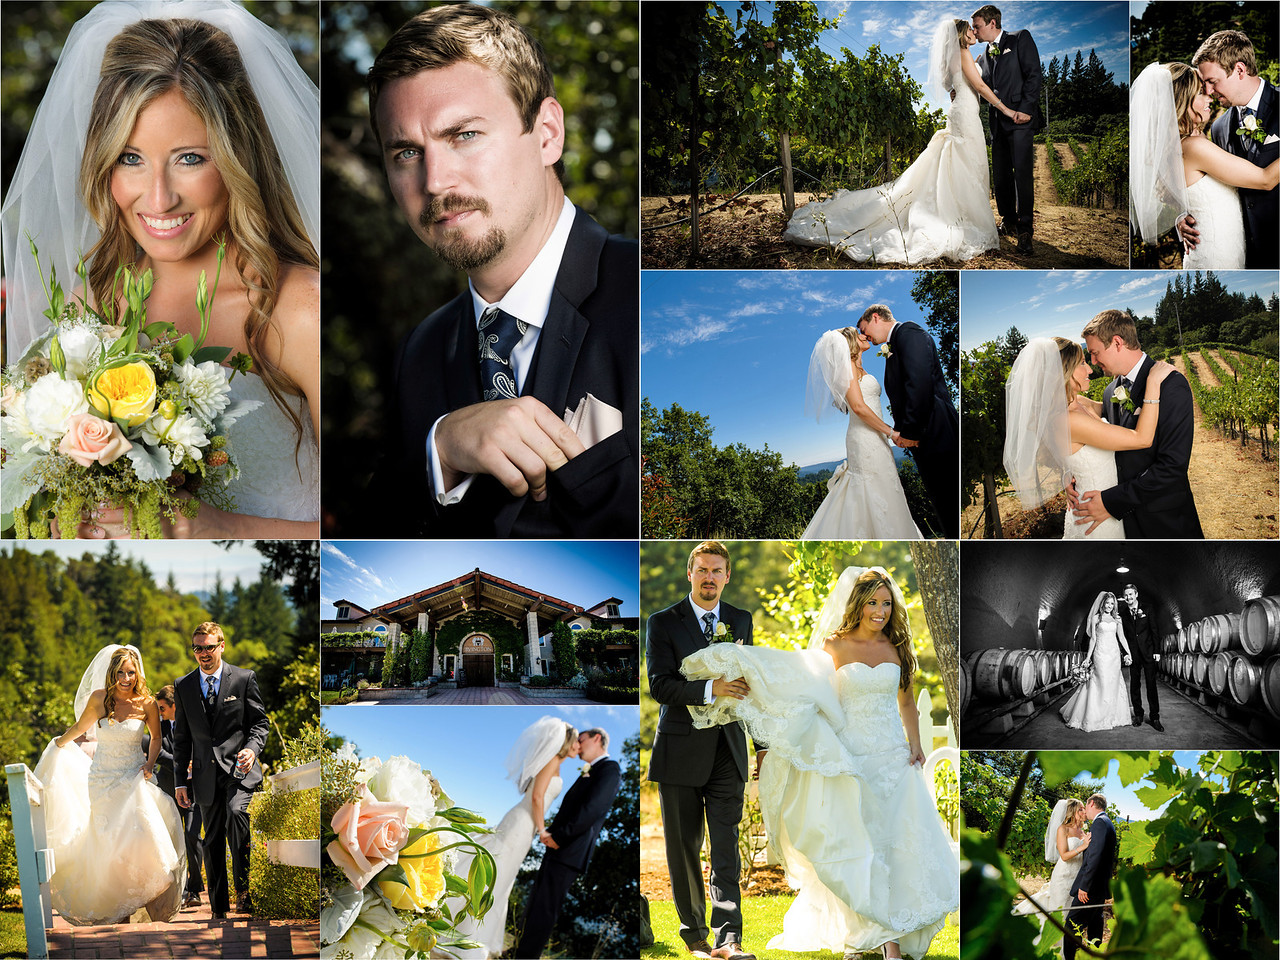 Erica_and_Justin_Byington_Winery_Los_Gatos_Wedding_Photography_4x6_Photo_Board_04